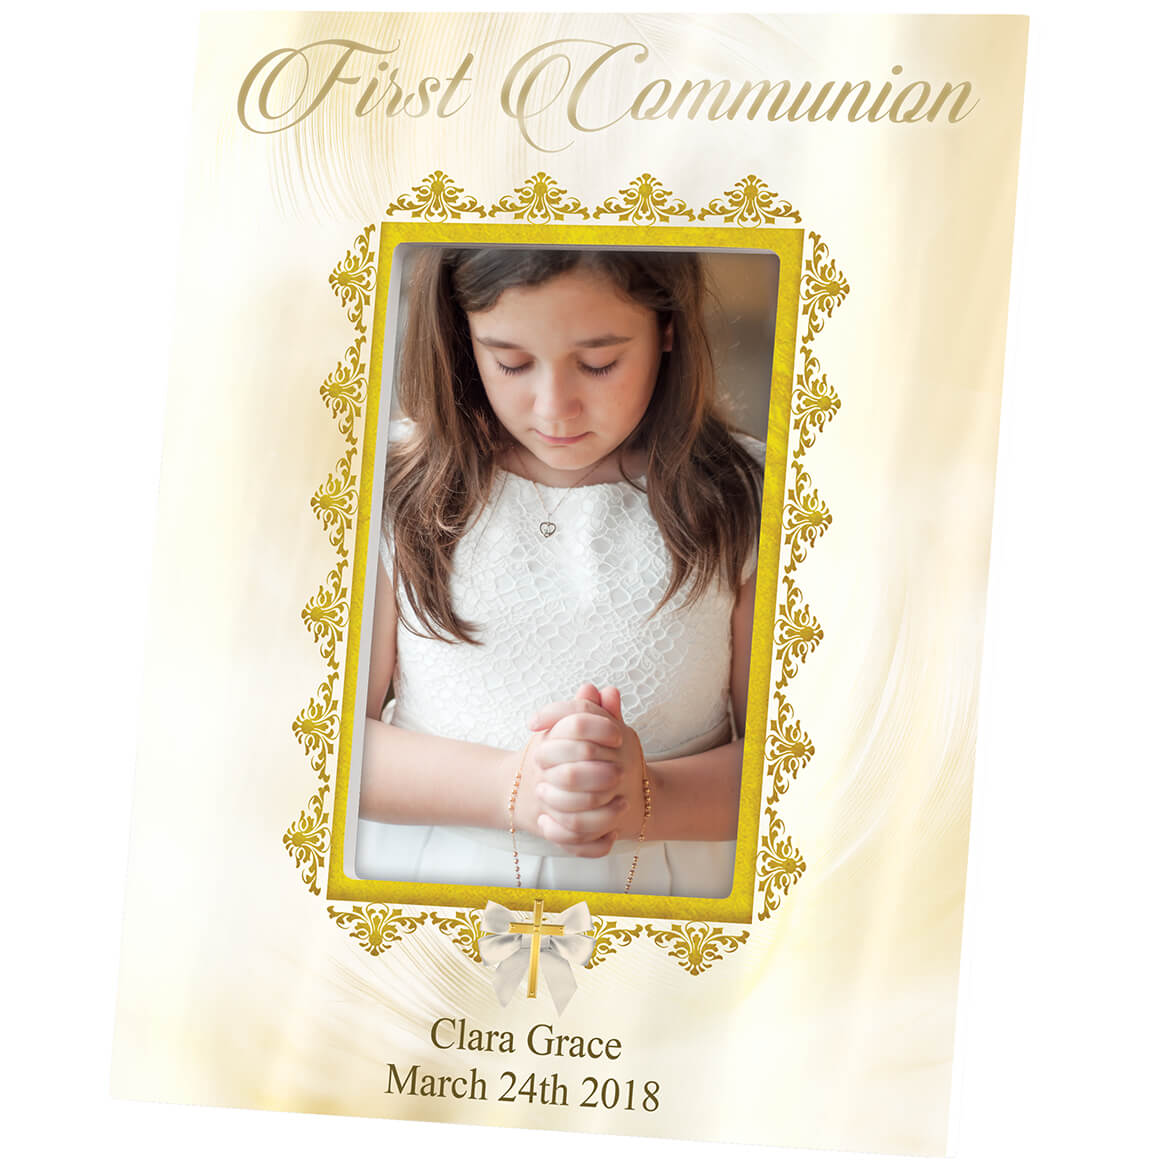 Personalized First Communion Frame-364633